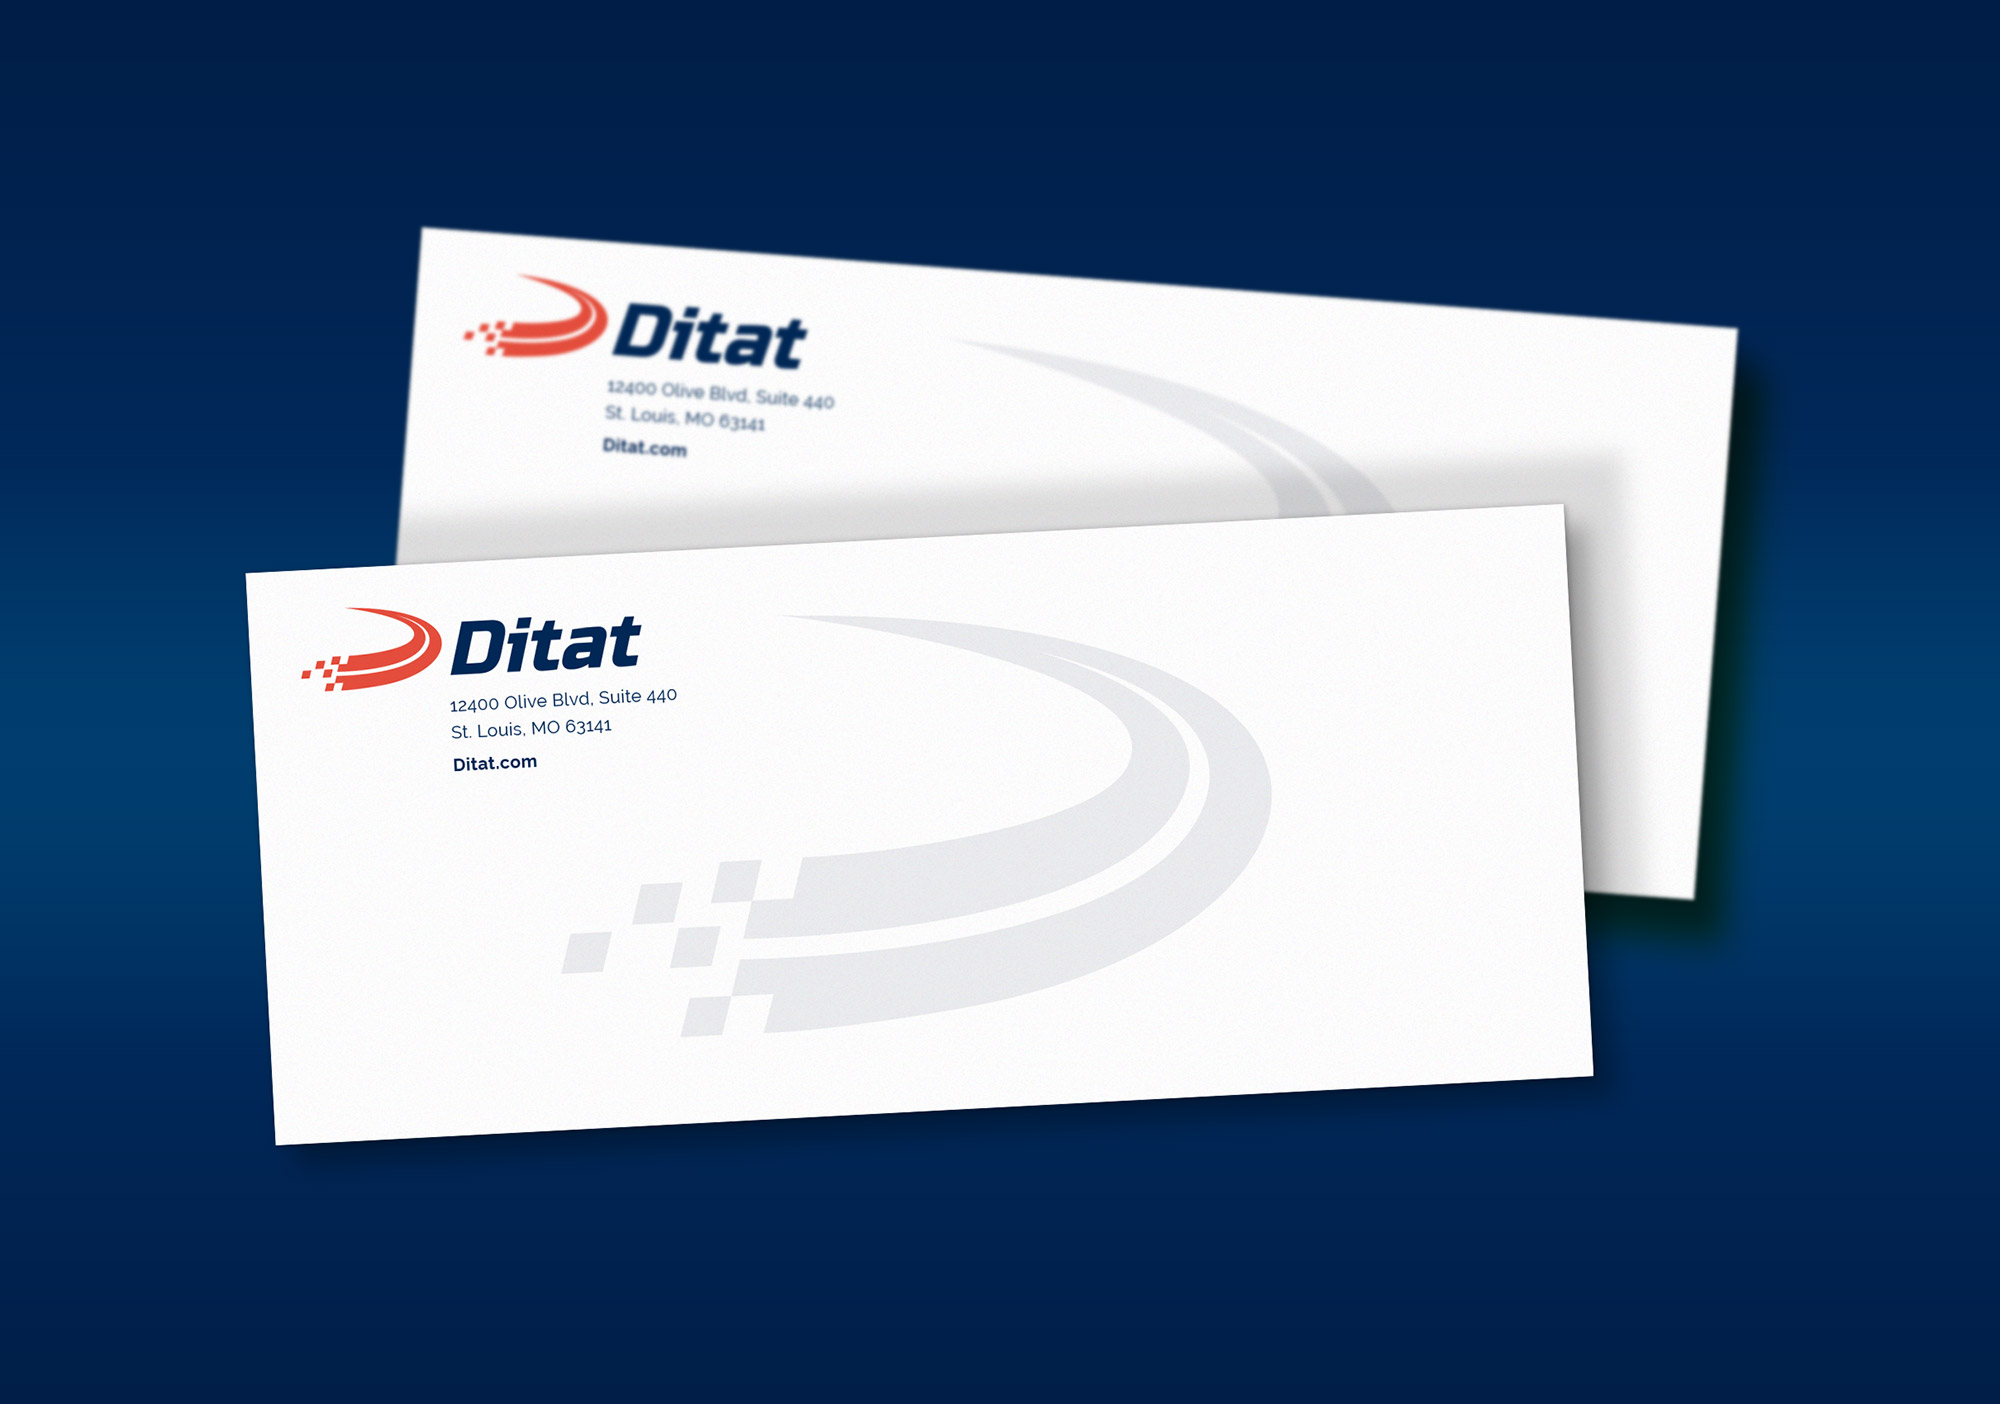 Ditat envelope design